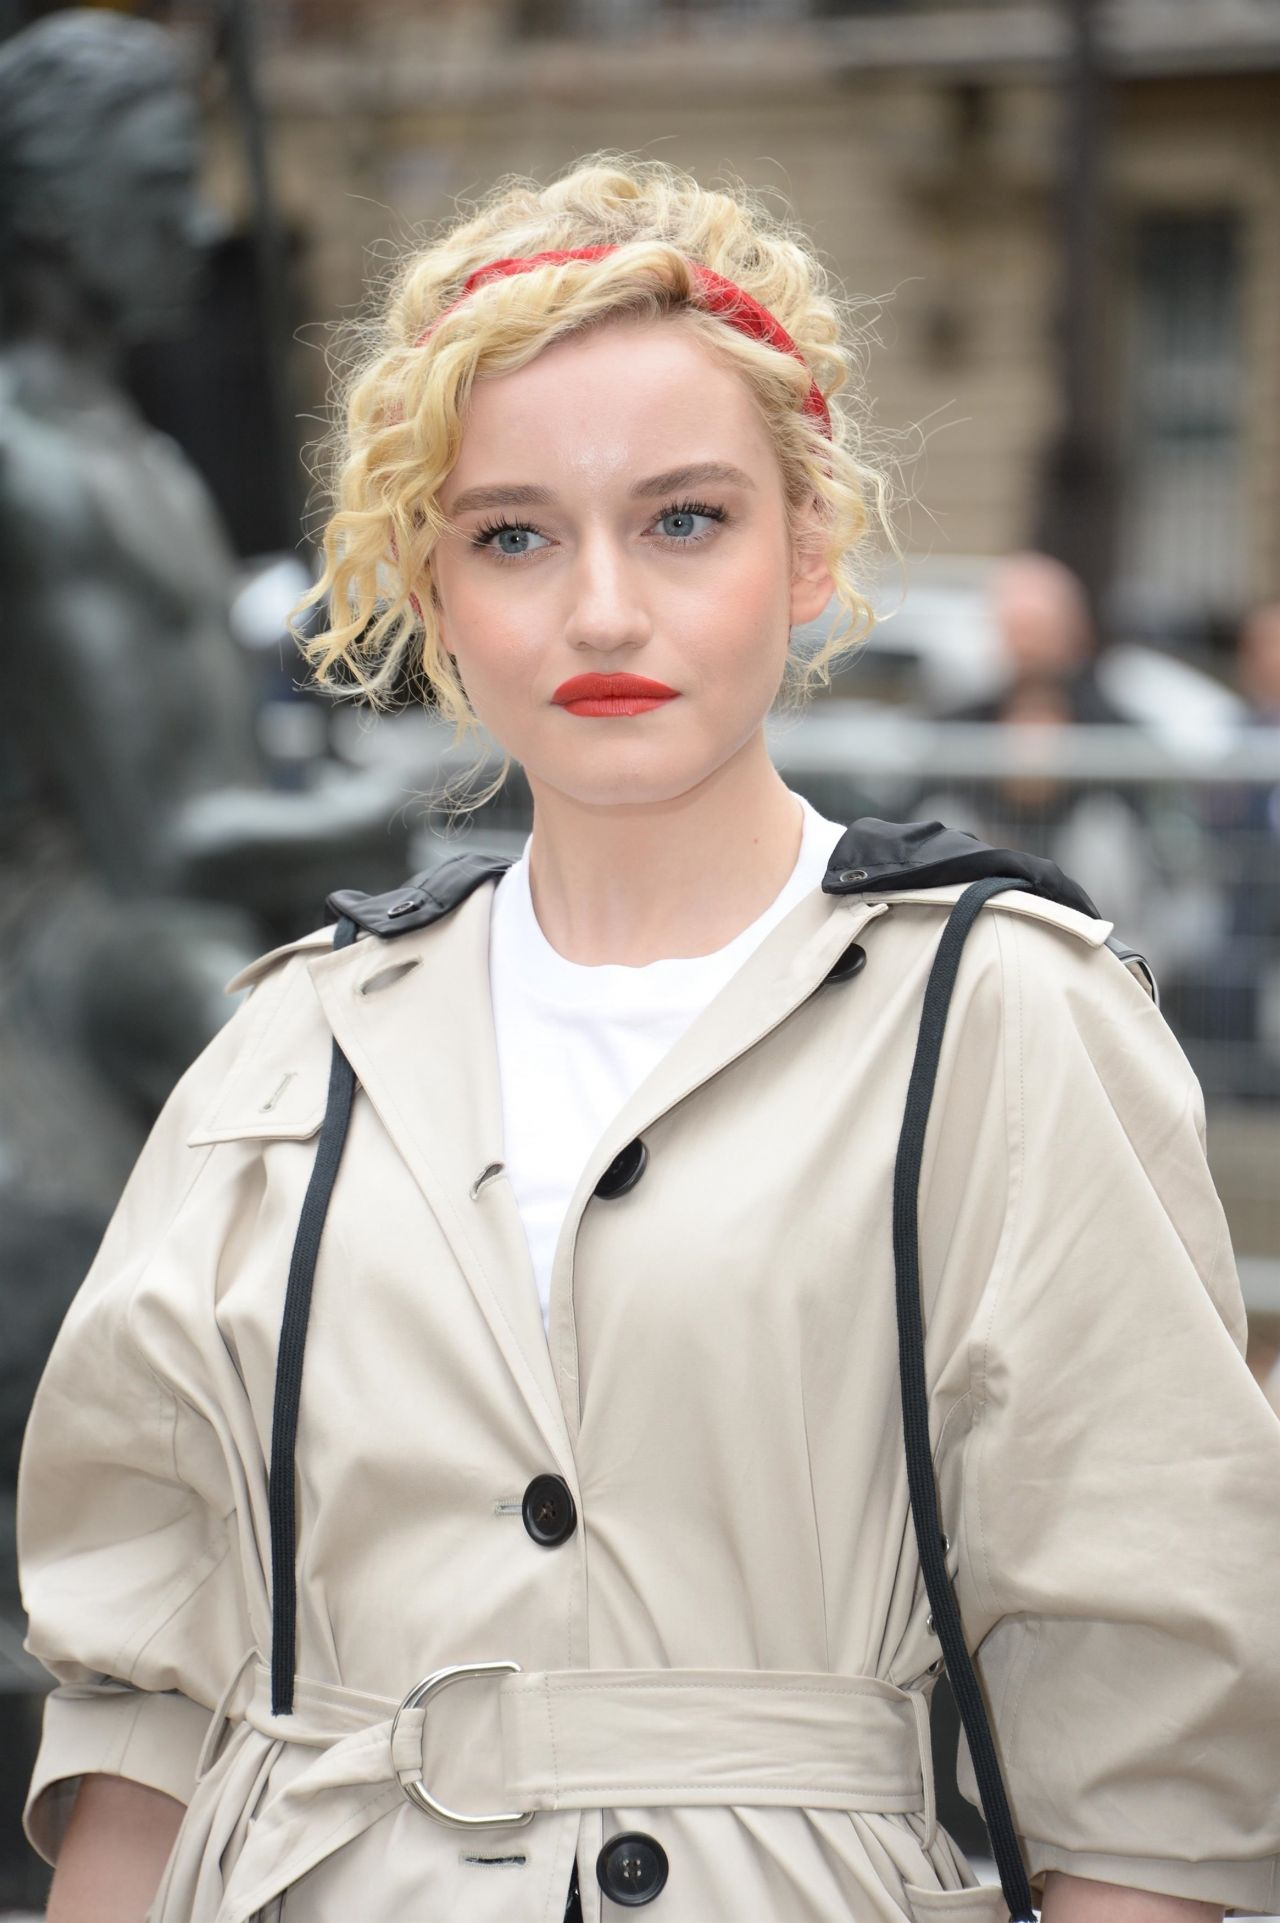 Julia Garner: Julia Garner Latest Photos